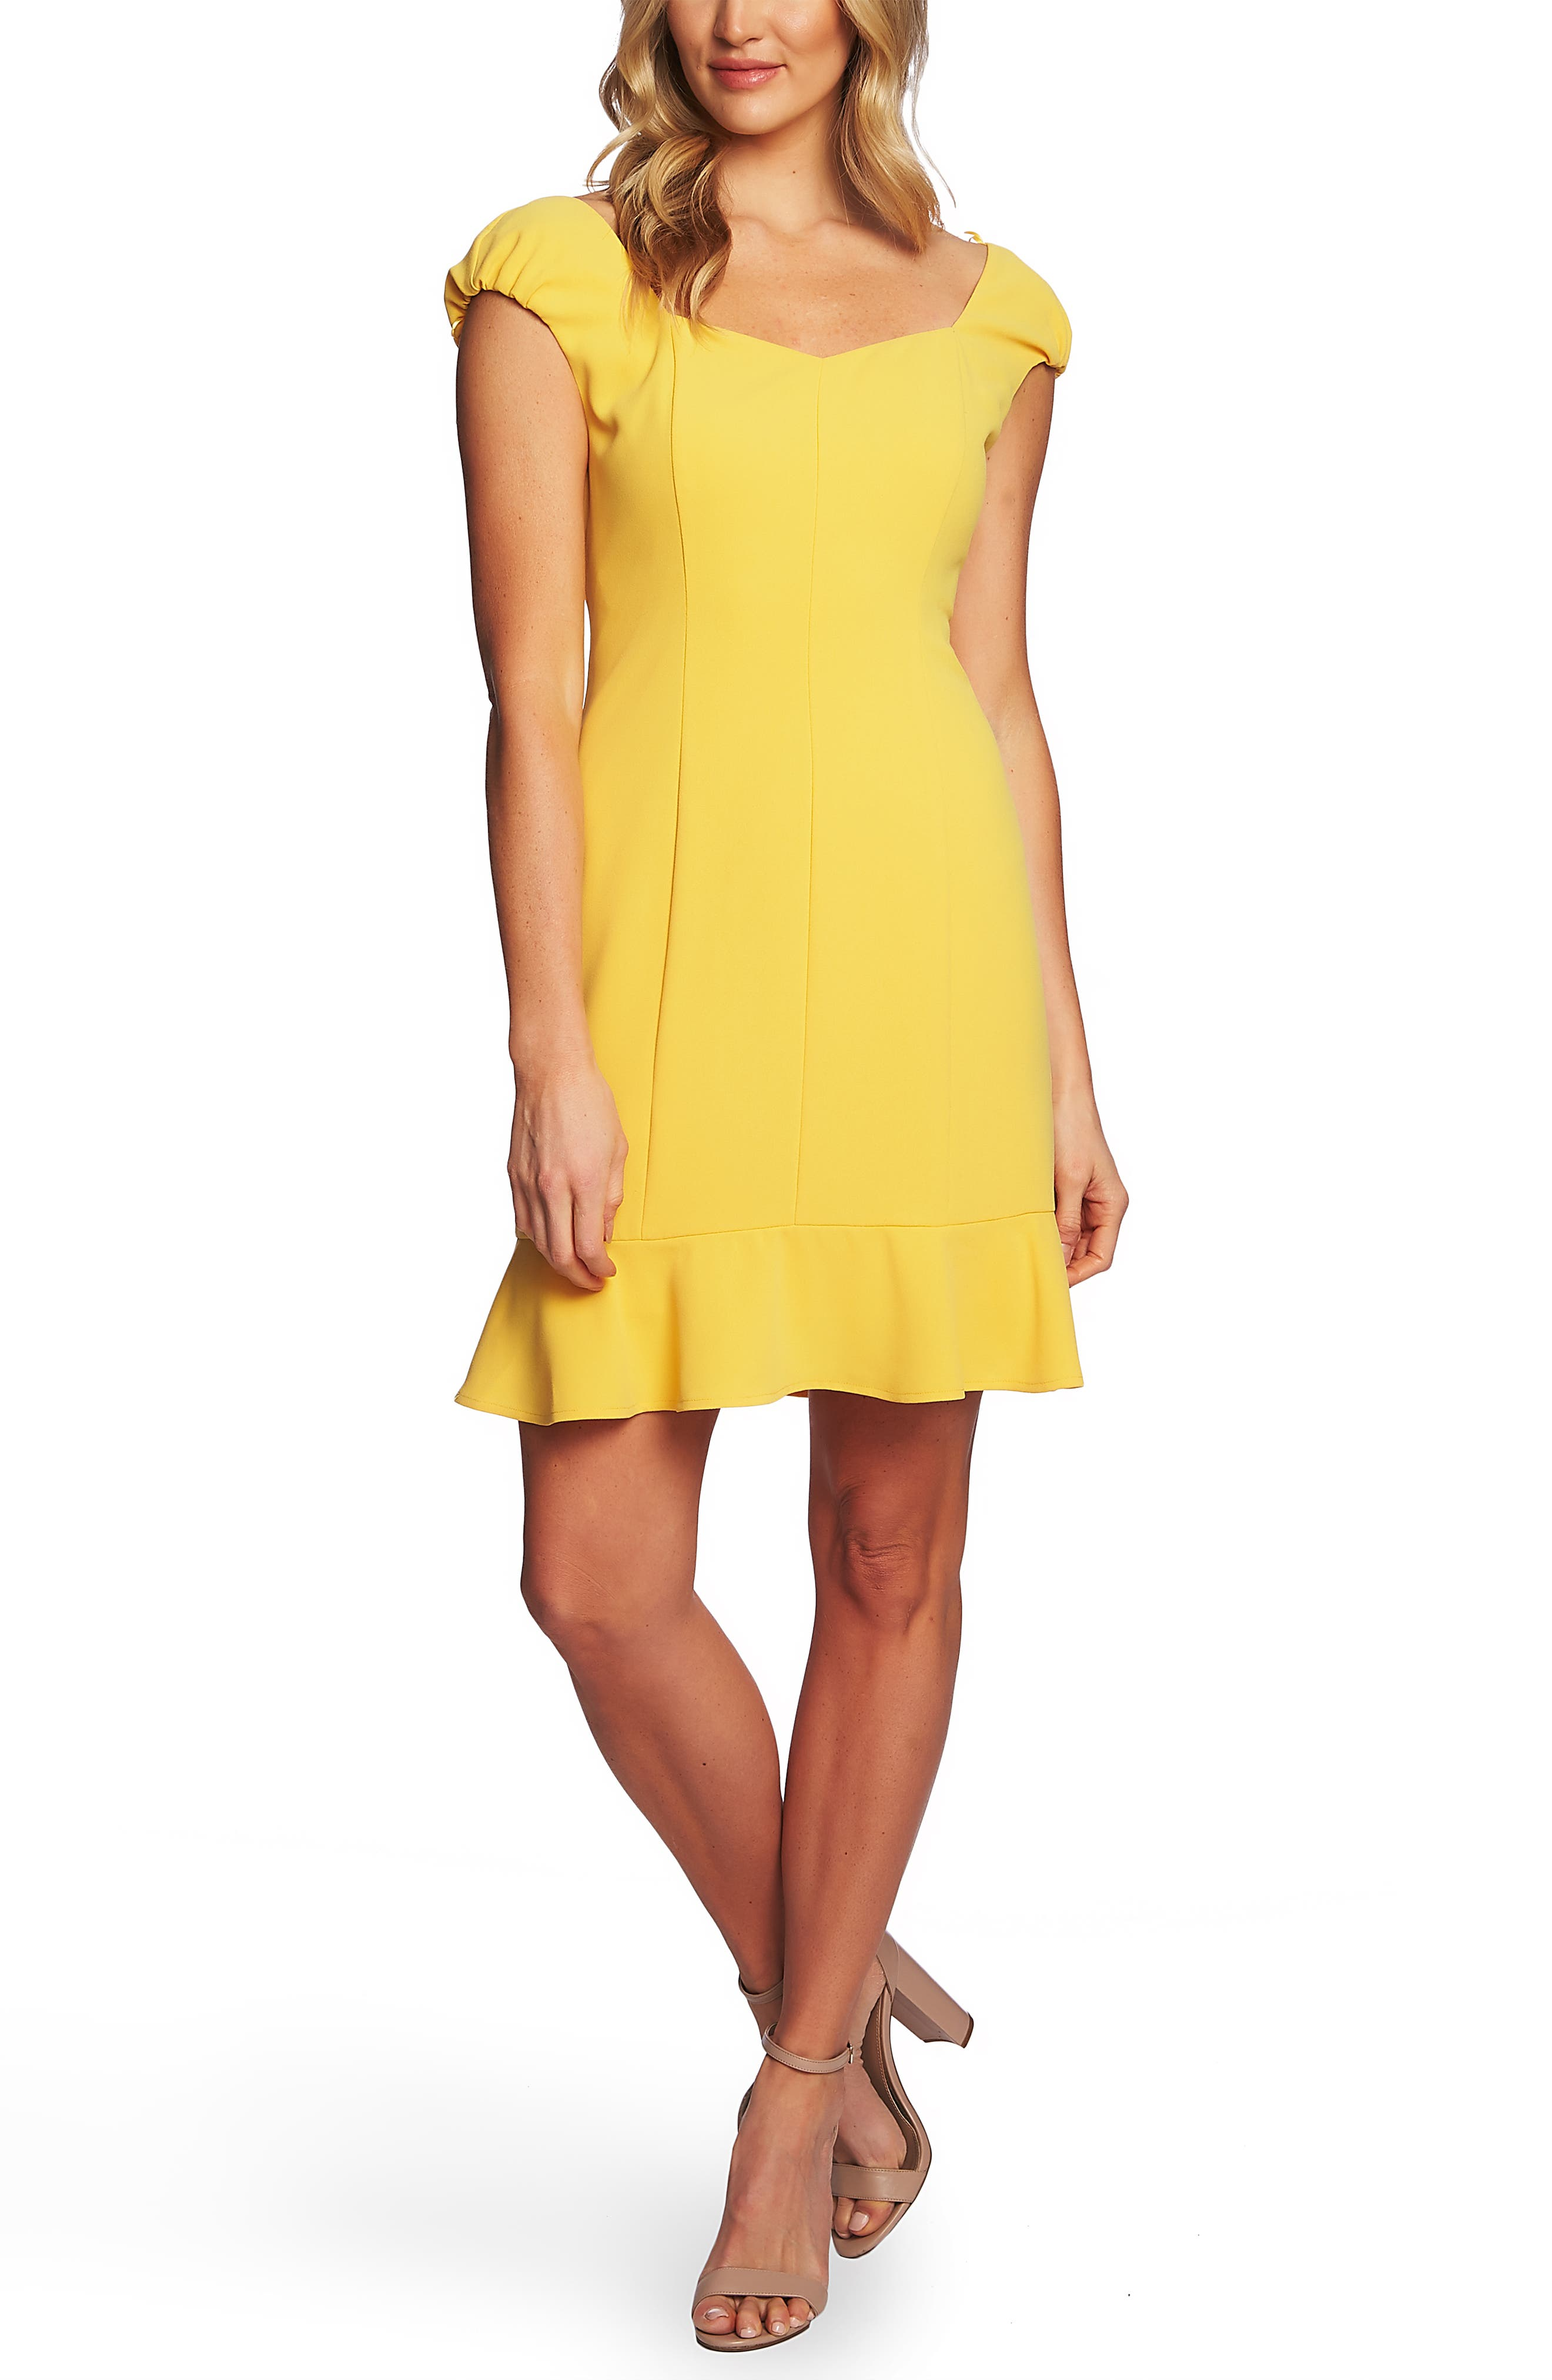 Cheap Yellow Cocktail Dresses